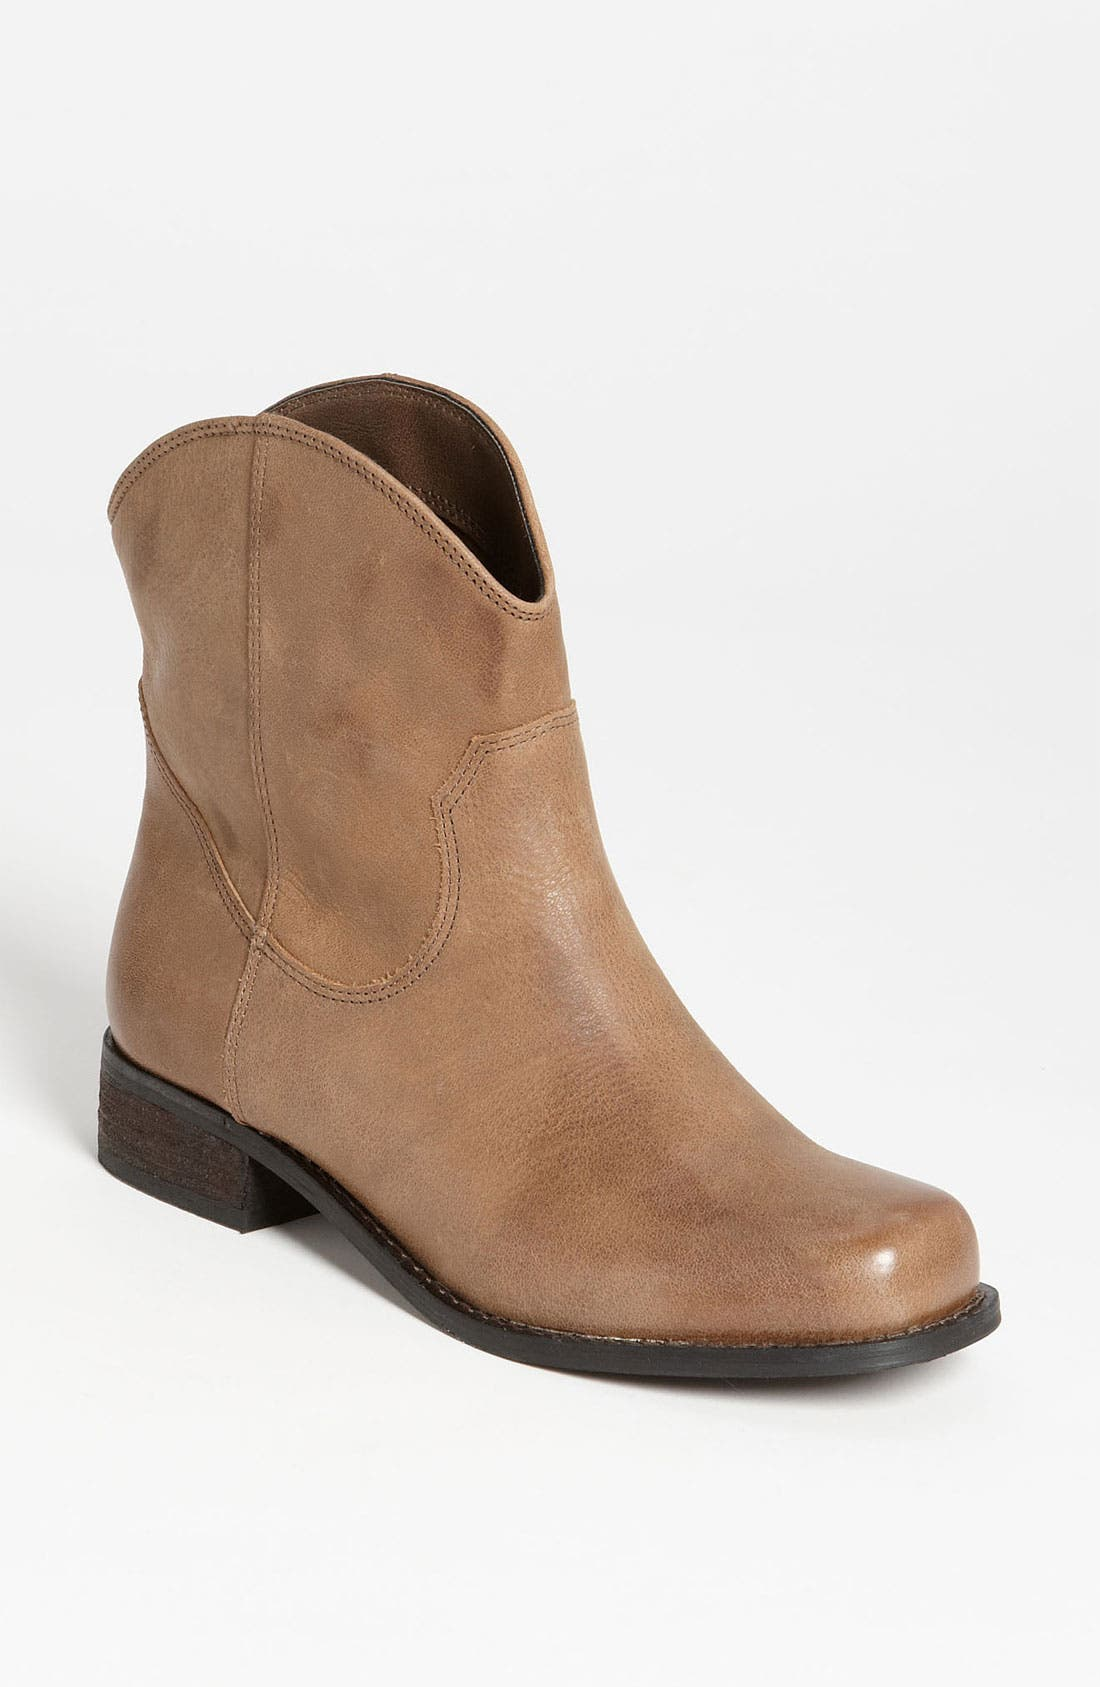 Main Image - Jessica Simpson 'Cranaby' Boot